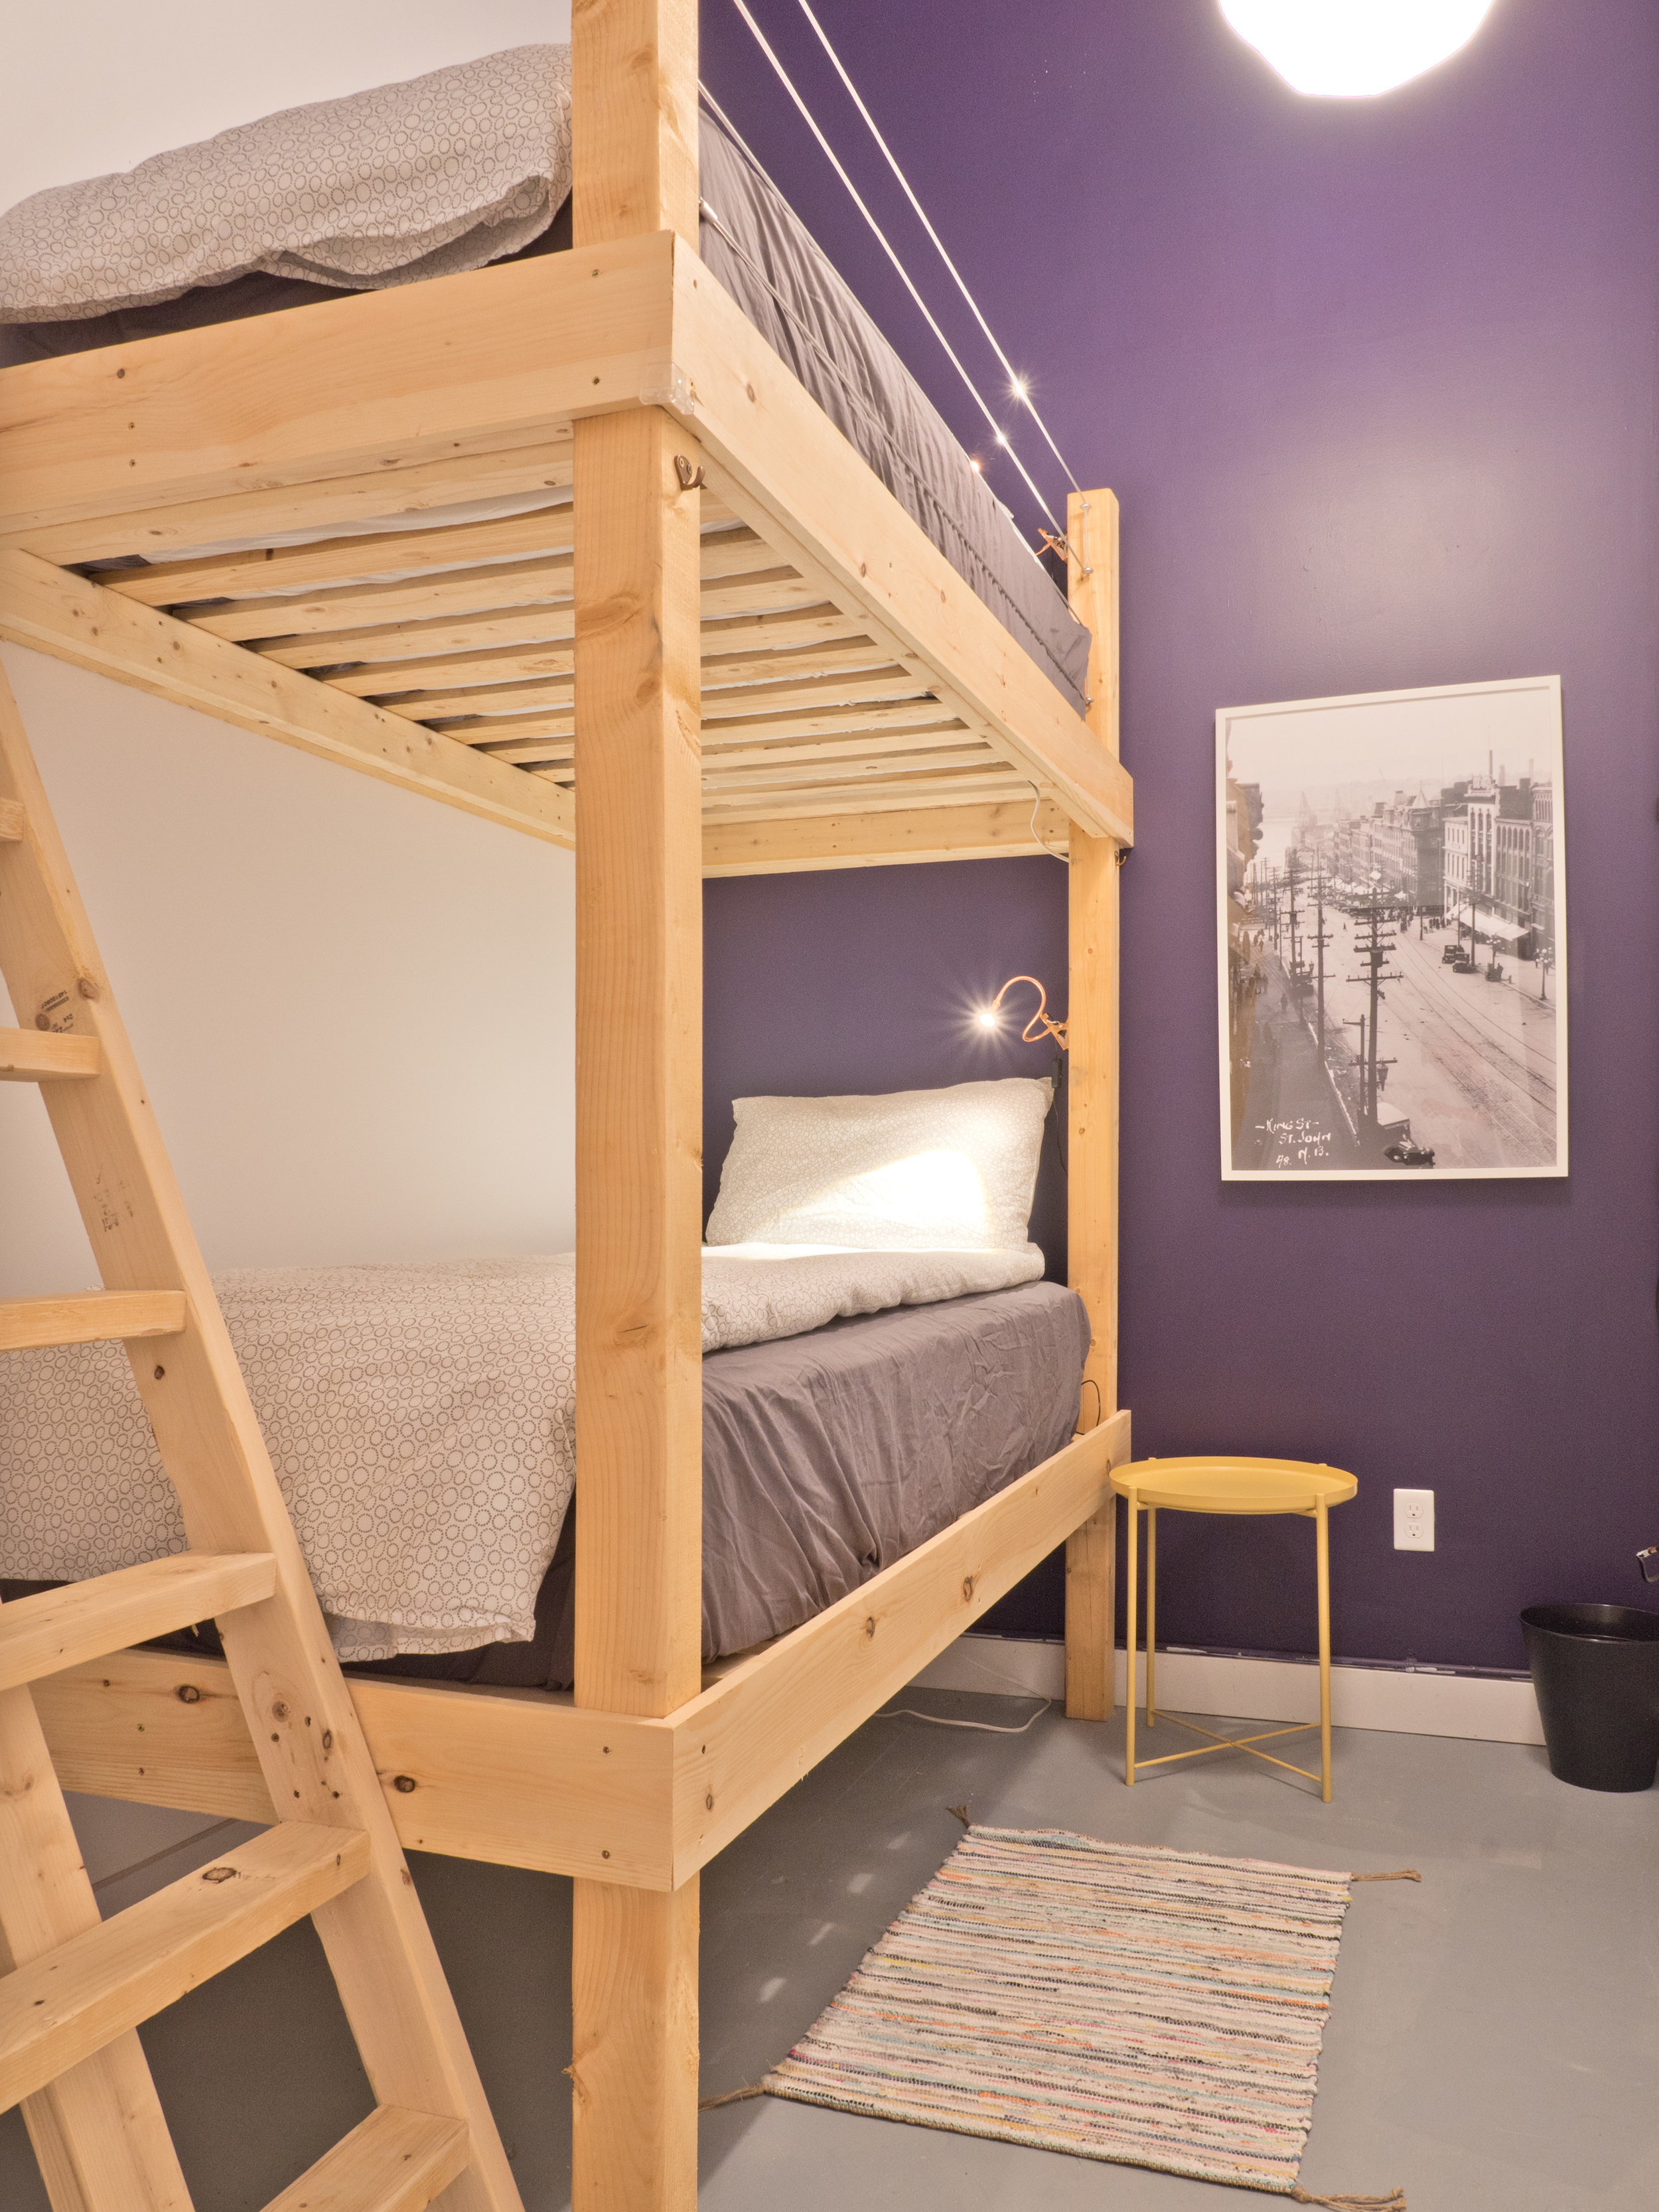 Book your stay here in a private bunk room is the perfect way to split a space with your travelling companion, at BunkHaus Boutique Hostel, Saint John New Brunswick